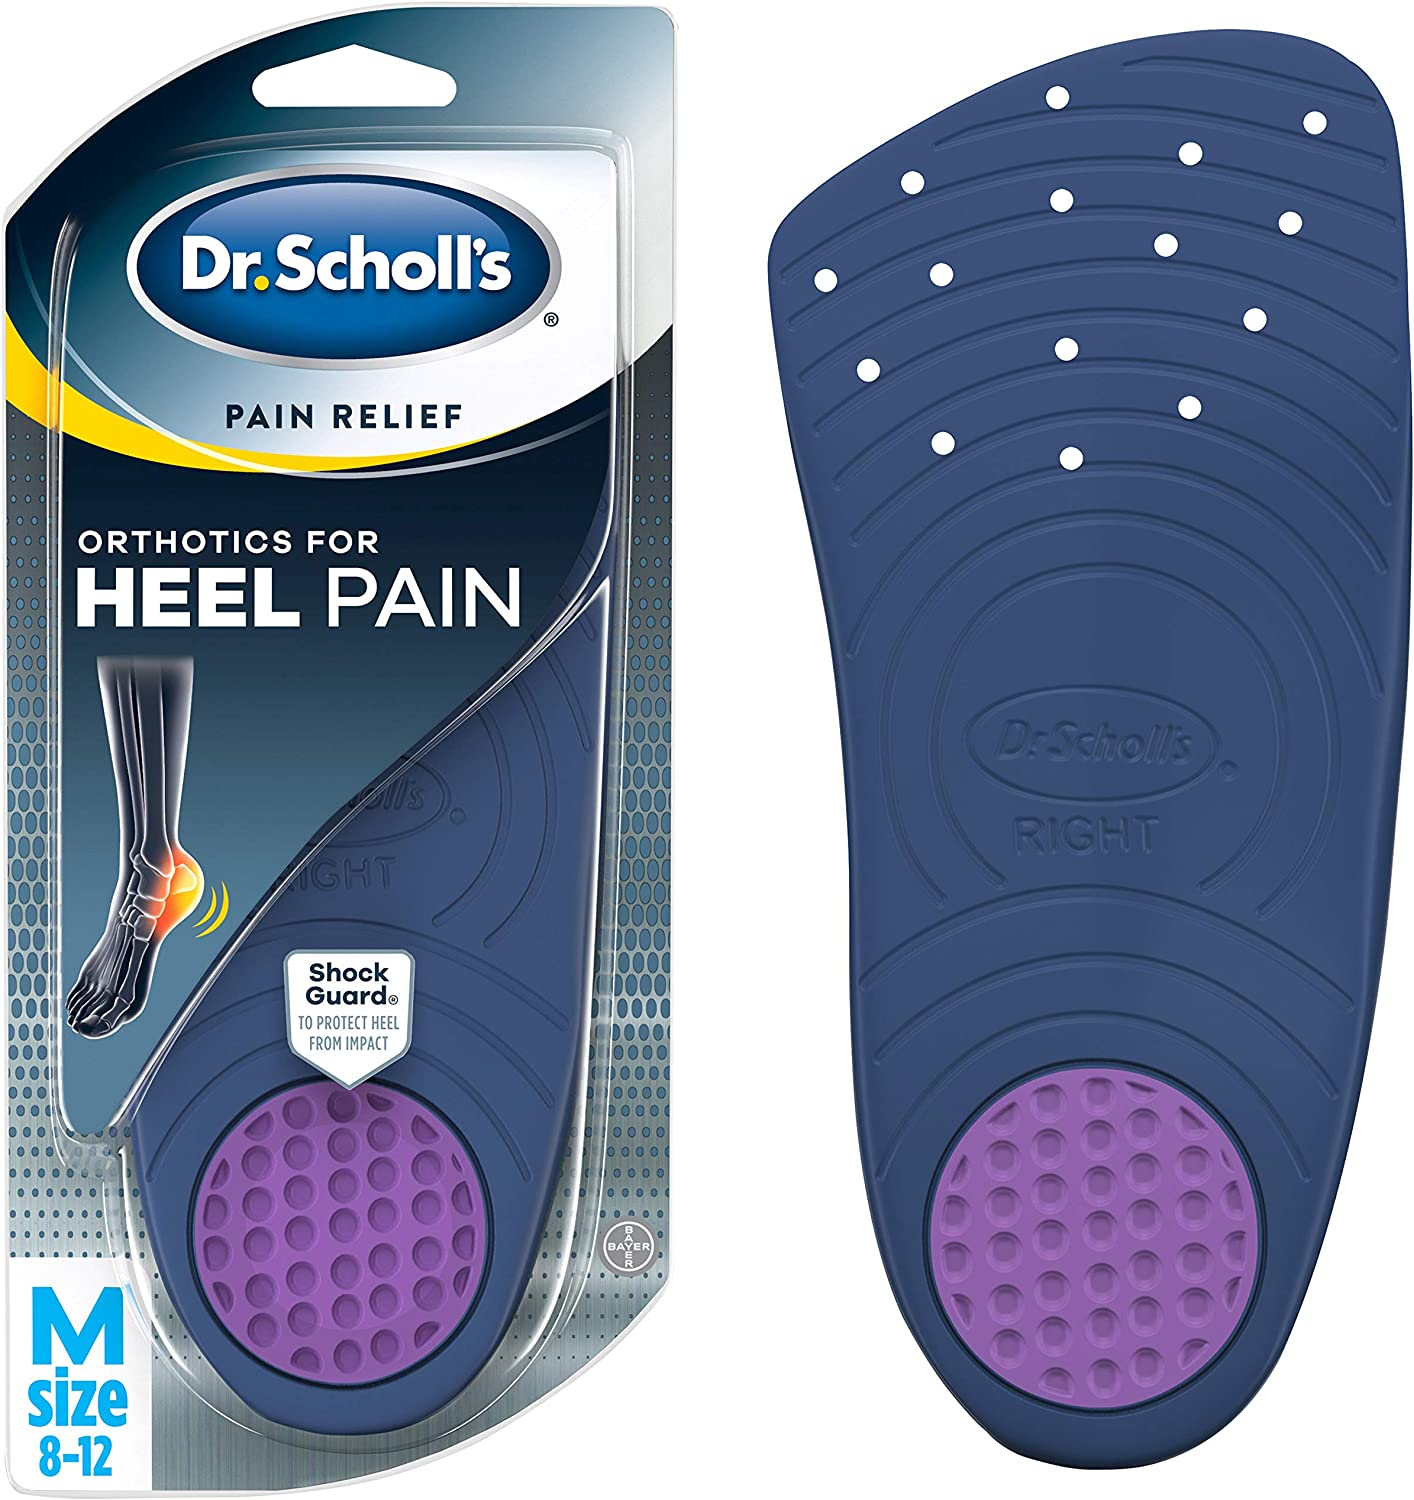 Dr. Scholl's HEEL Pain Relief Orthotics // Clinically Proven to Relieve Plantar Fasciitis, Heel Spurs and General Heel Aggravation (for Men's 8-12, also available for Women's 5-12): Health & Personal Care